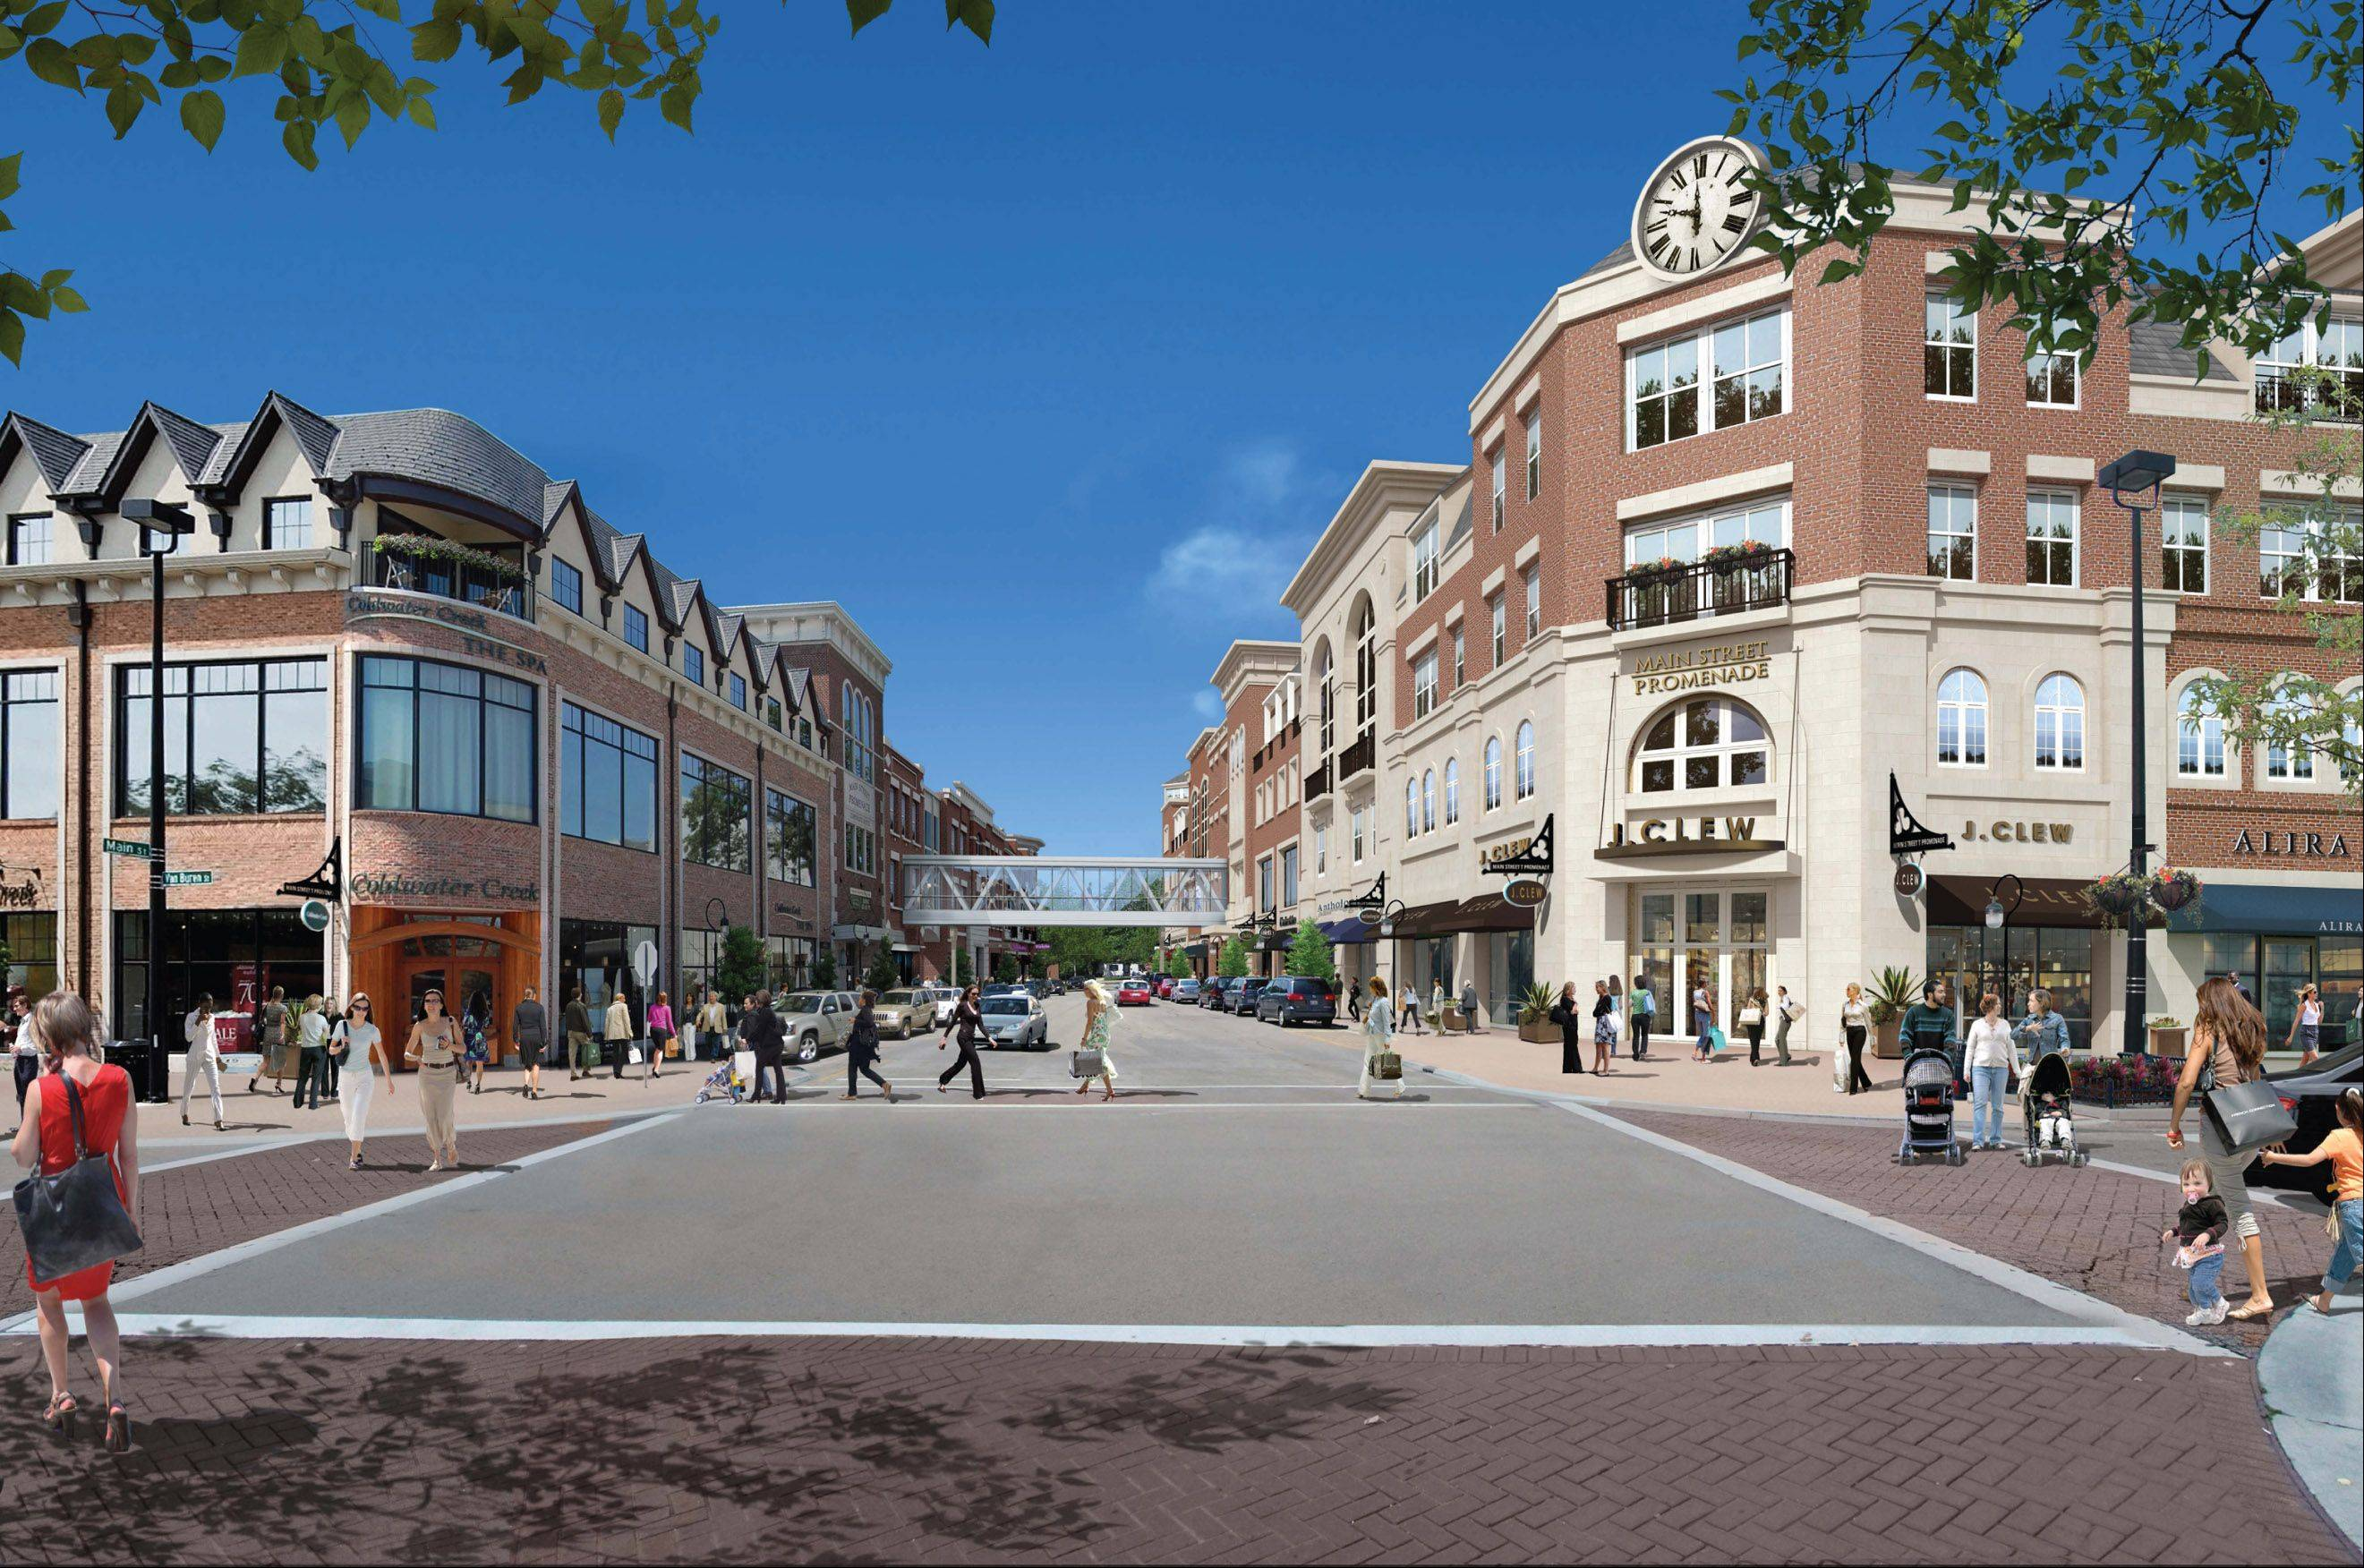 Developers eventually hope to connect the new Main Street Promenade East development in downtown Naperville to the original Promenade on the west side of Main Street, via a pedestrian bridge.